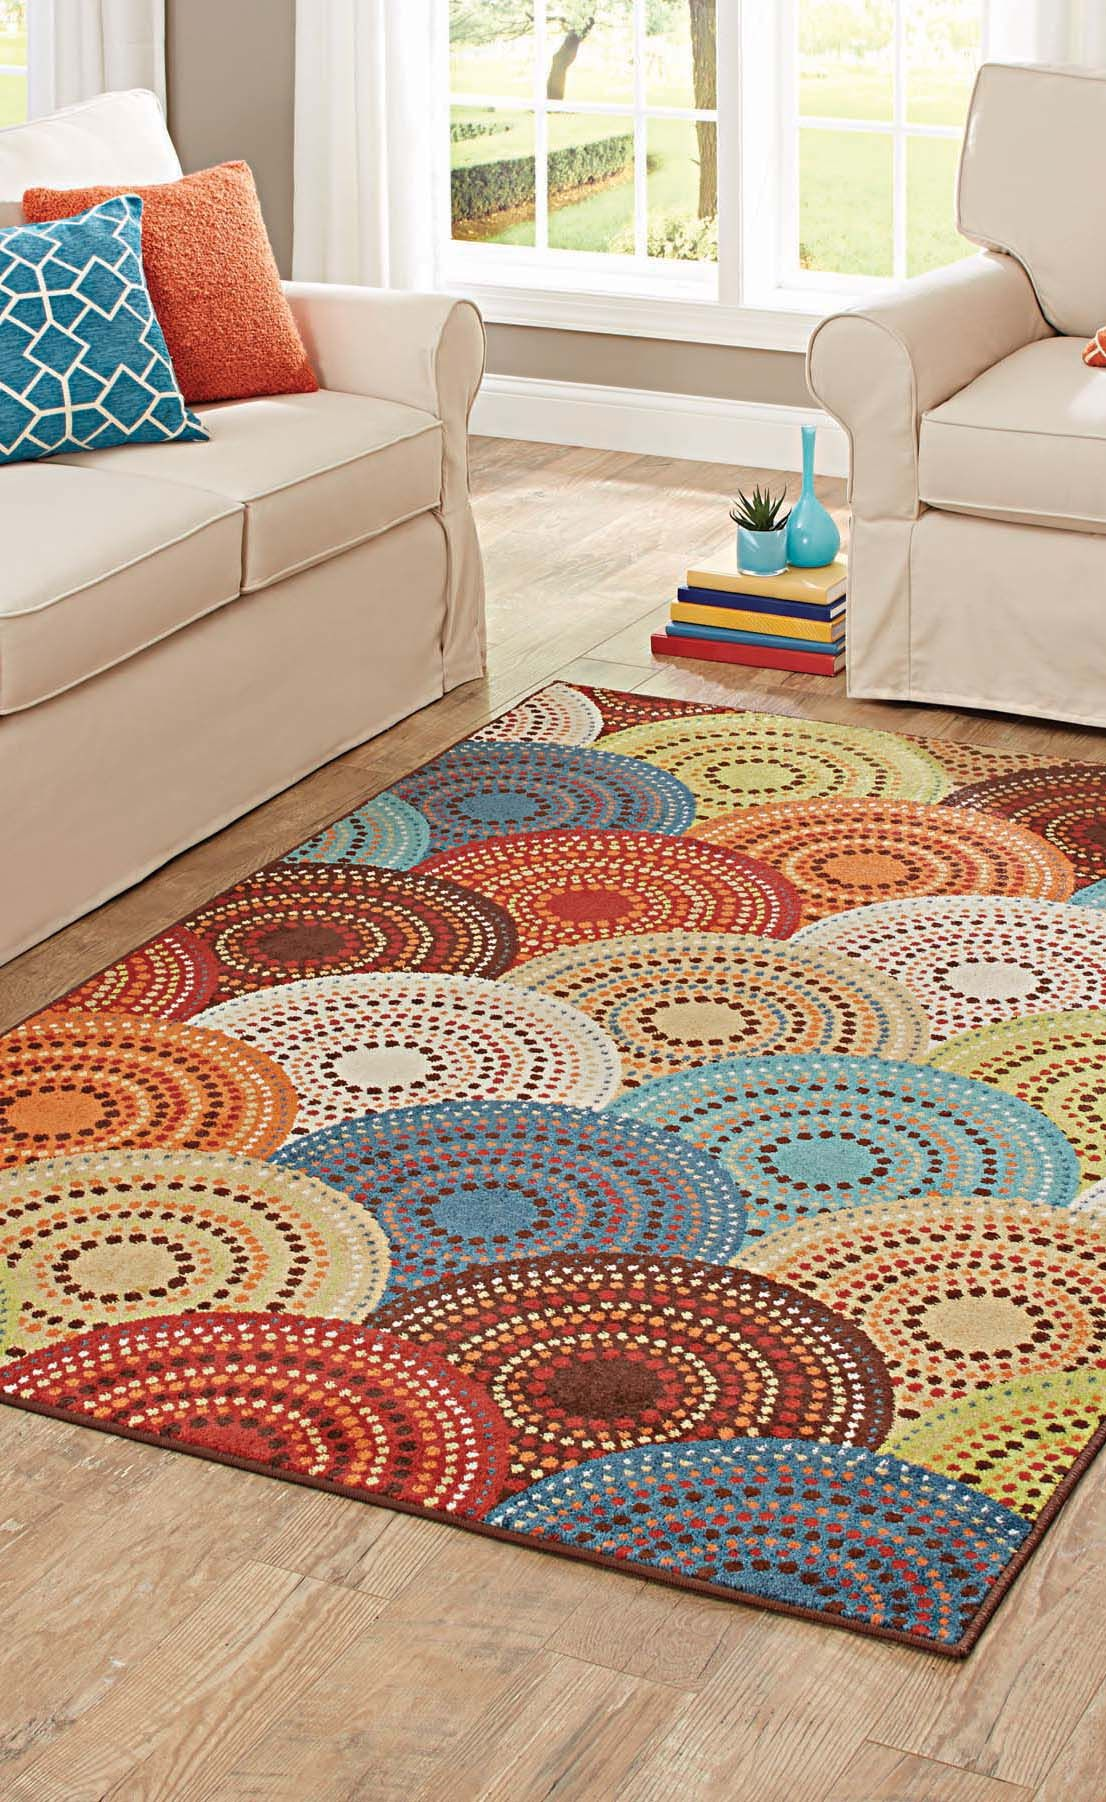 Better Homes And Gardens Bright Dotted Circles Area Rug Or Runner Walmart Com Trending Decor European Home Decor Cozy Decor